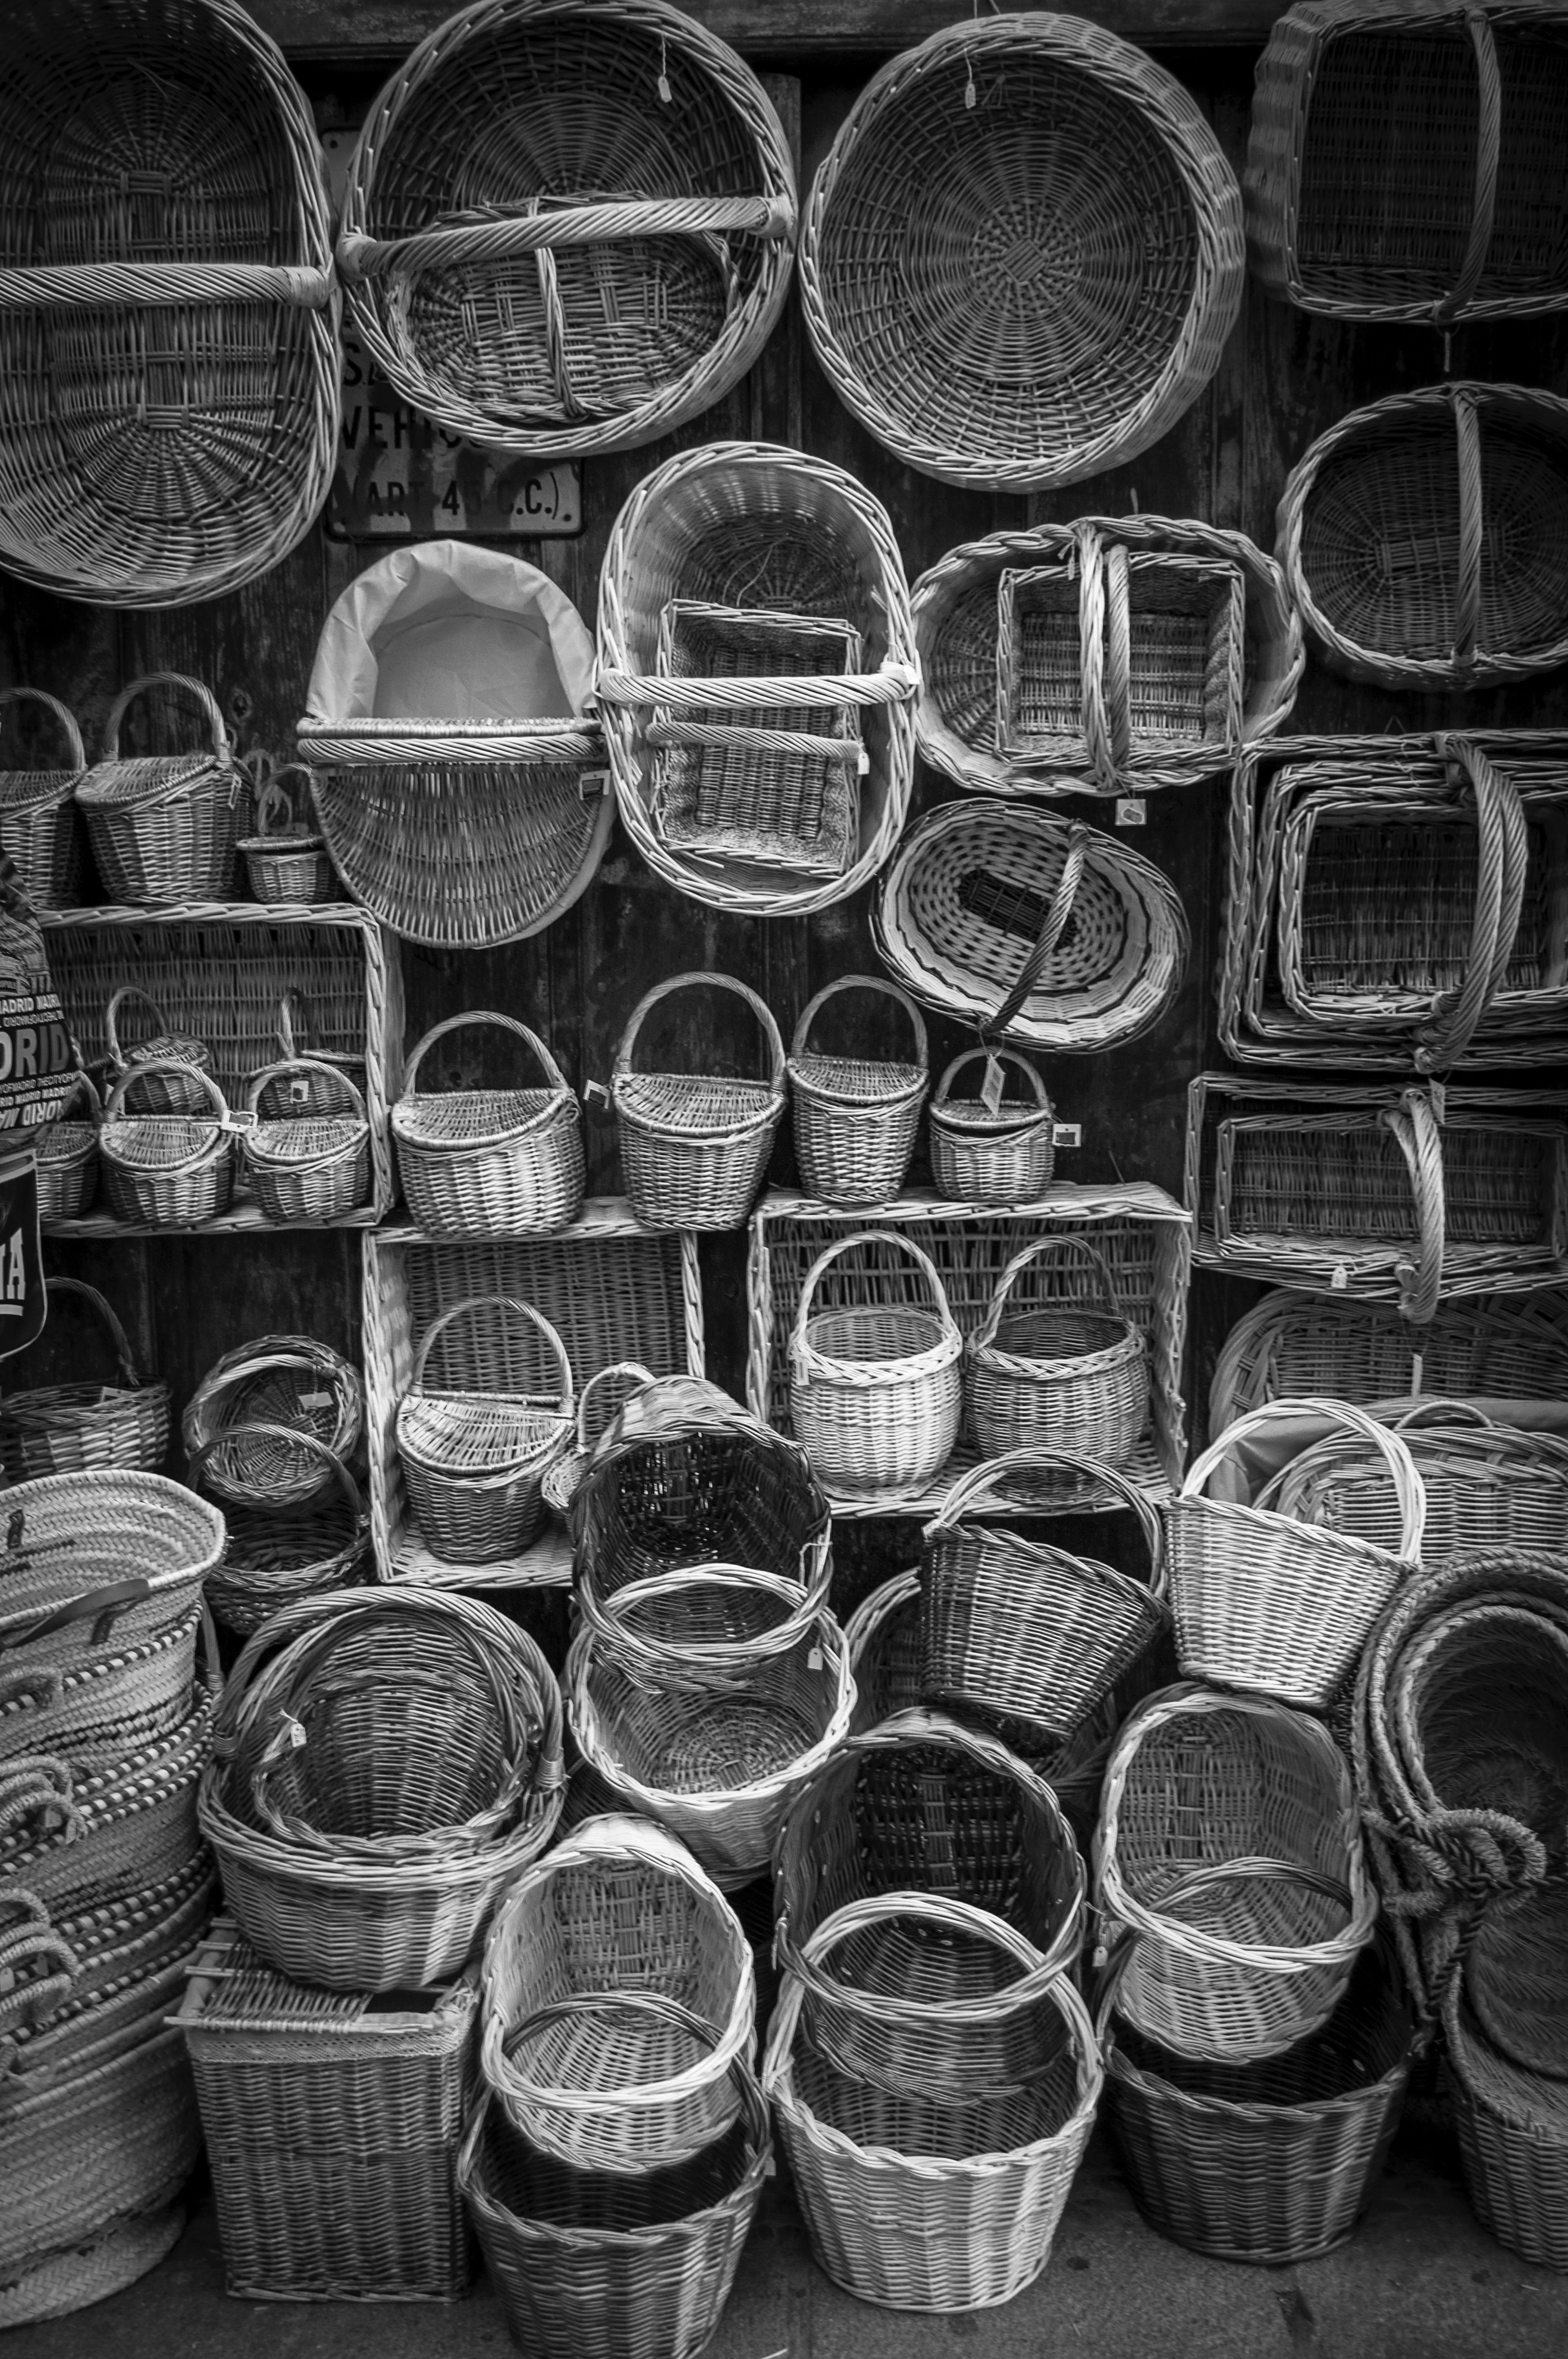 Free stock photo of baskets, black-and-white